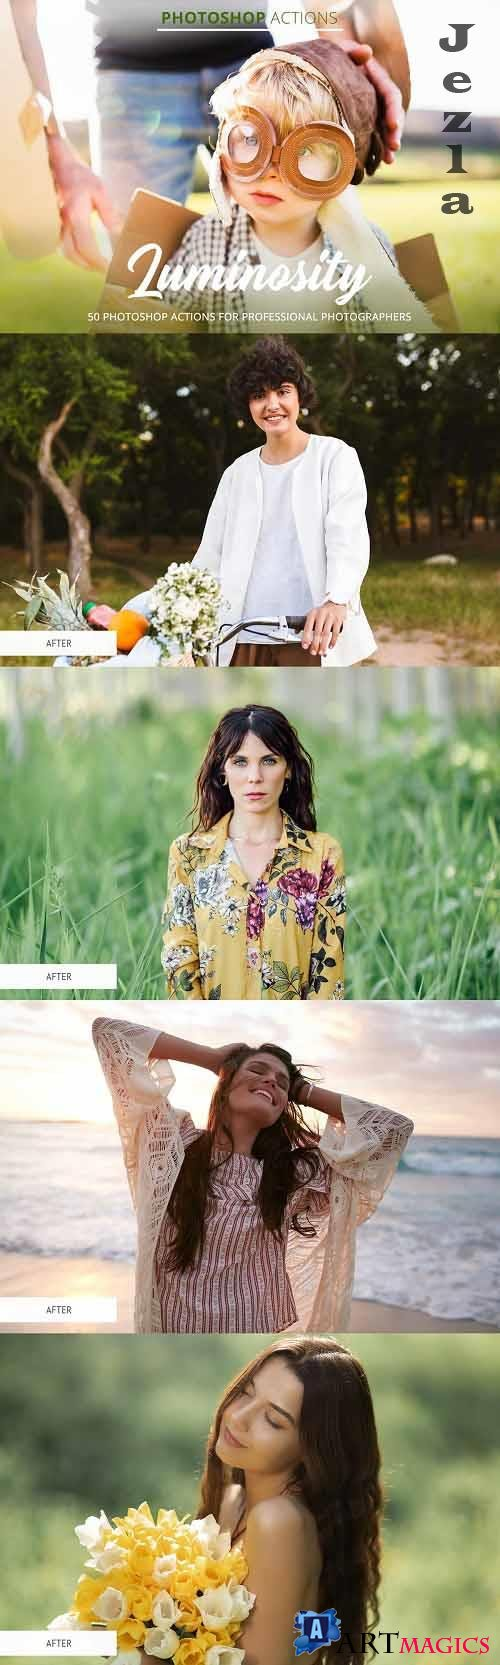 CreativeMarket - Luminosity Actions for Photoshop 4848059